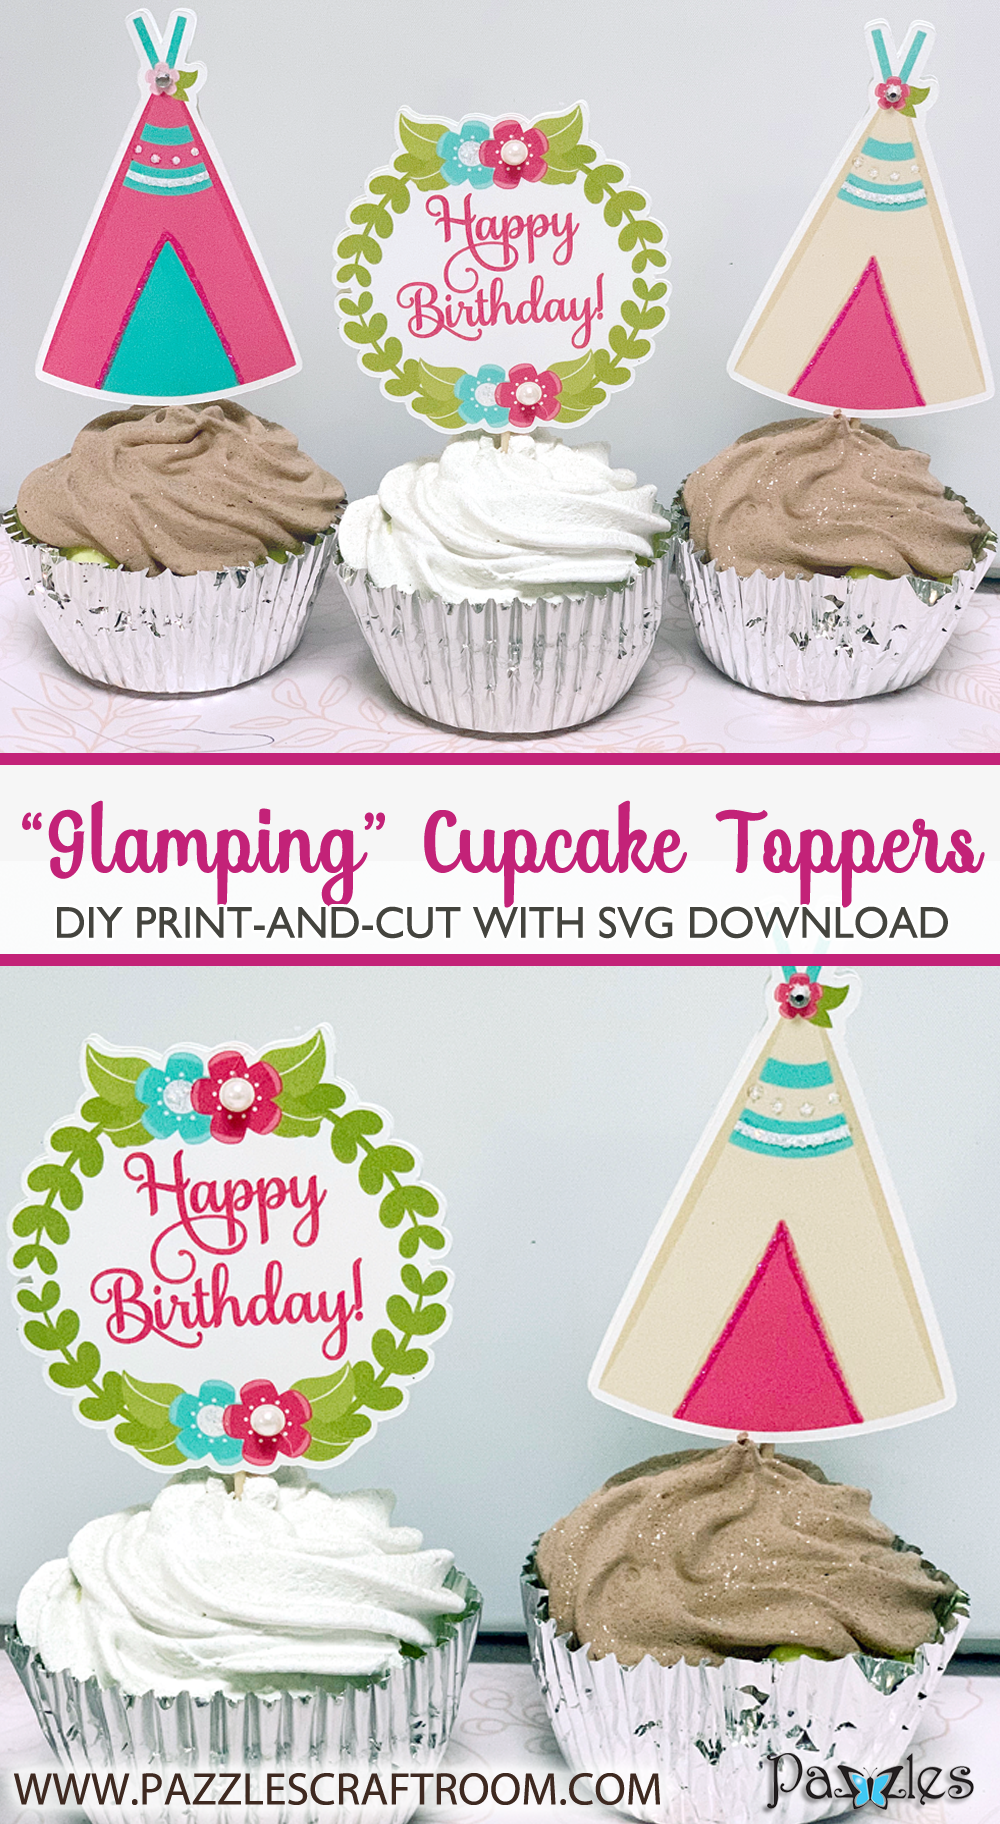 Pazzles DIY Glamping Cupcake Toppers with instant SVG download. Compatible with all major electronic cutters including Pazzles Inspiration, Cricut, and Silhouette Cameo. Design by Lisa Reyna.